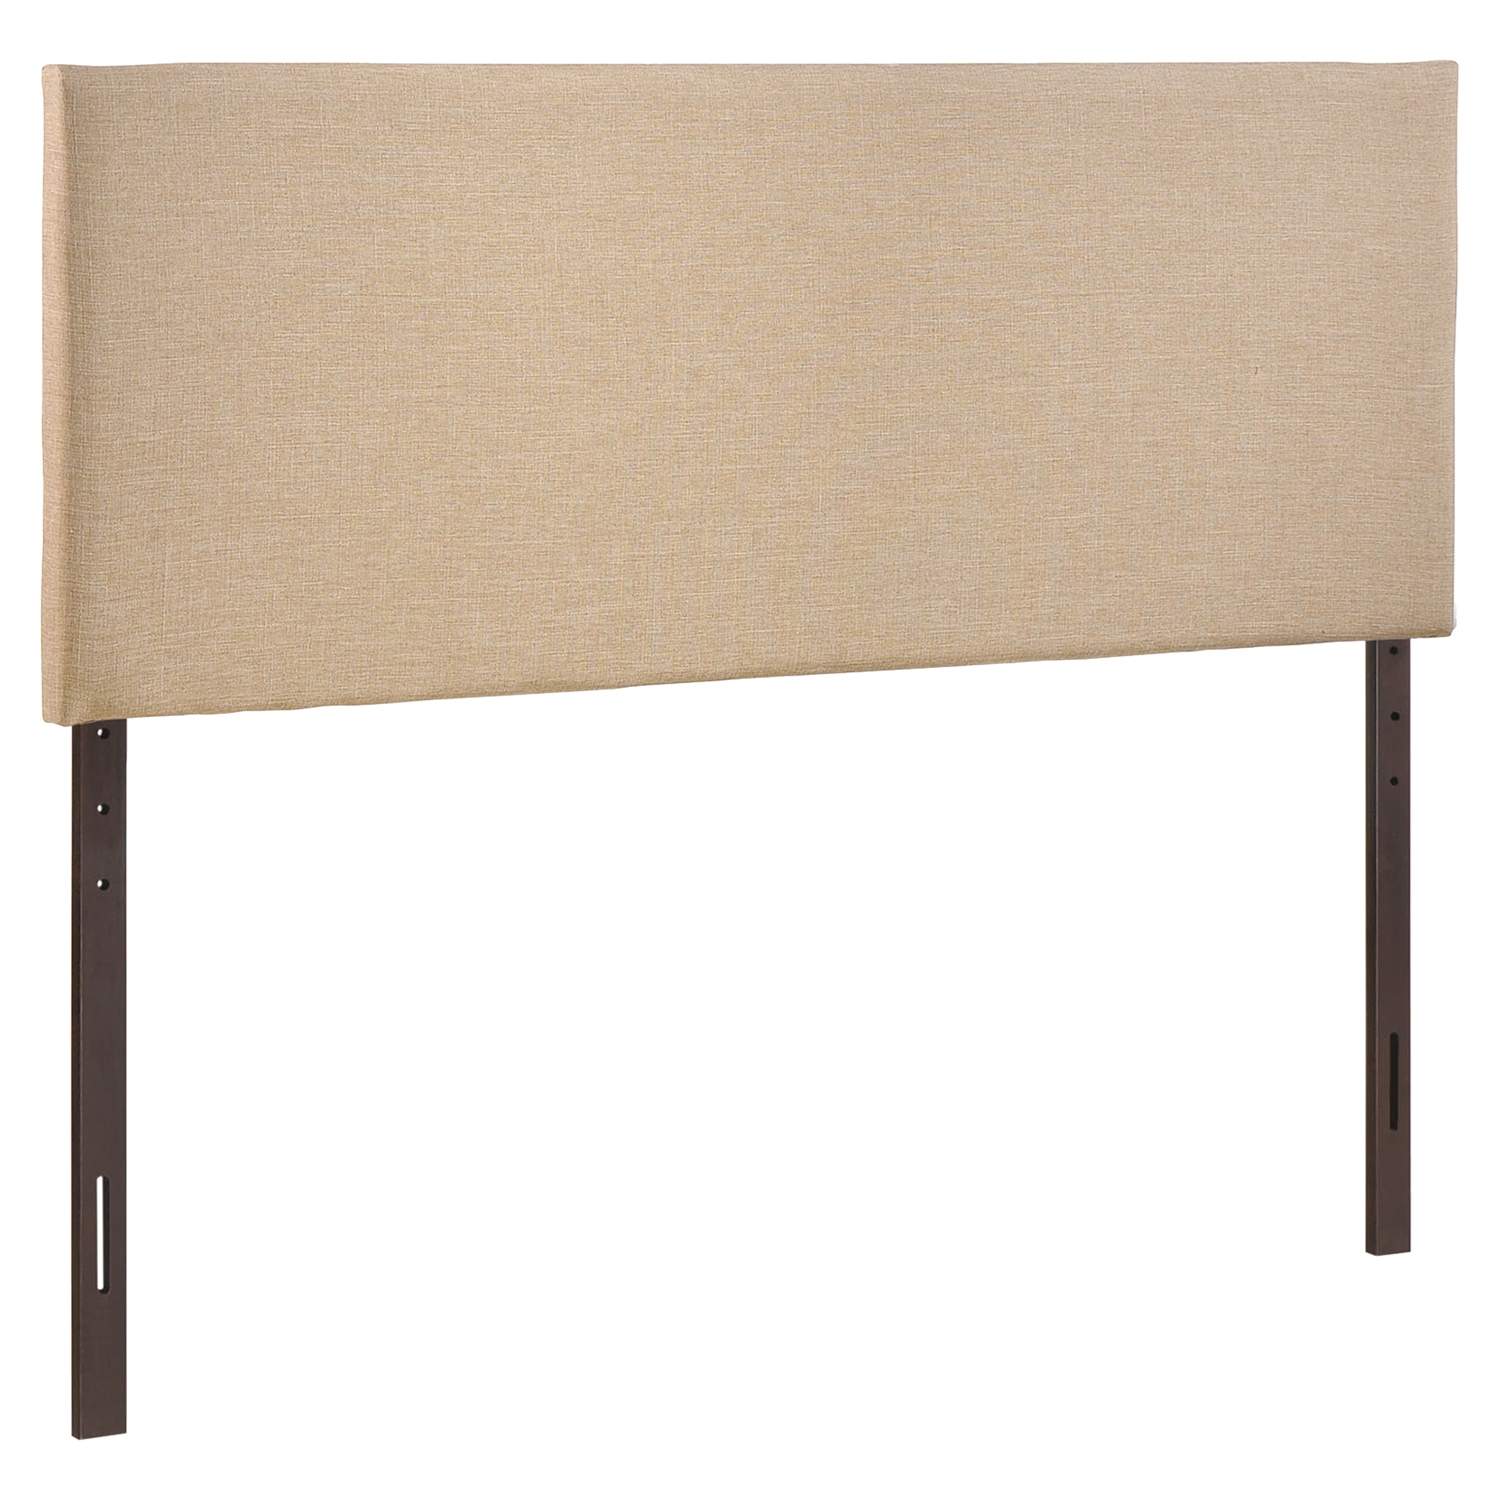 Region Queen Upholstered Headboard - EEI-MOD-5211